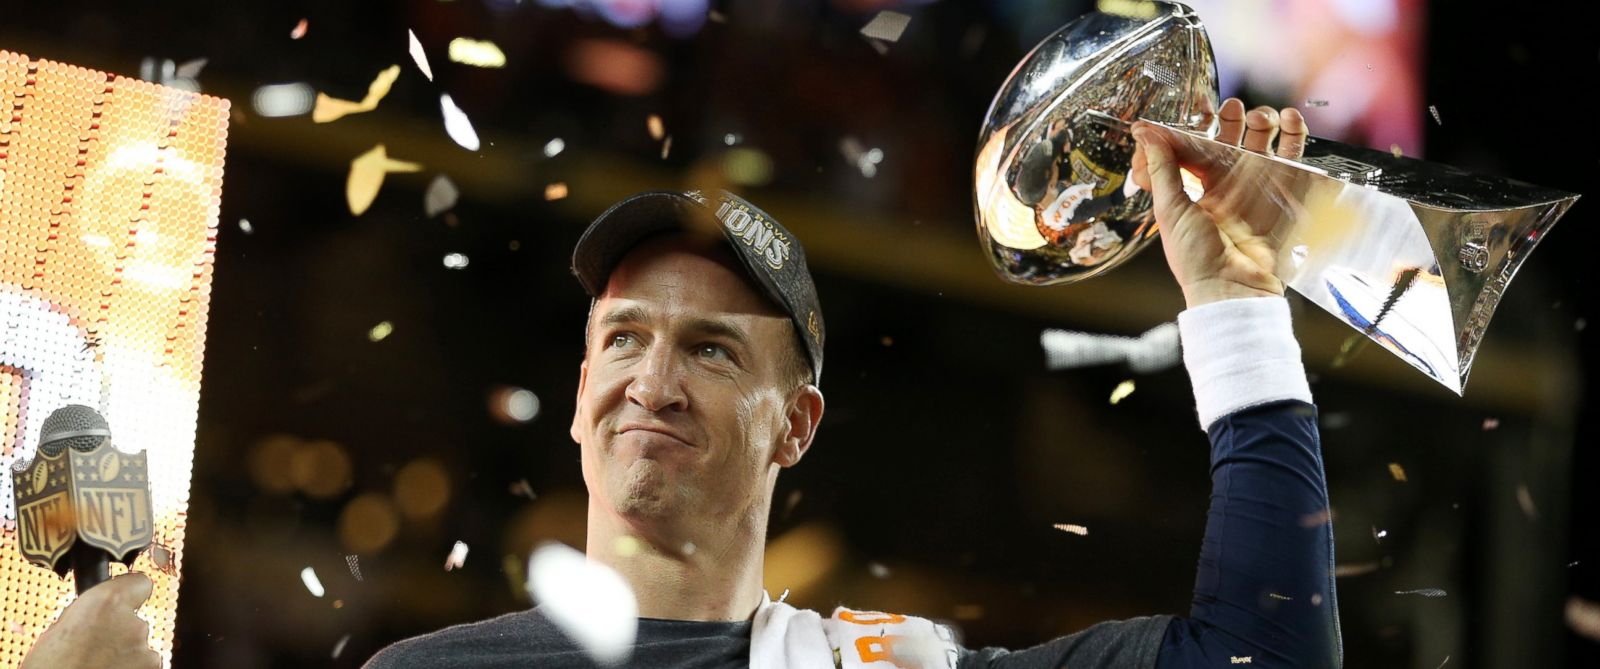 PHOTO: Denver Broncos quarterback Peyton Manning celebrates with the Vince Lombardi Trophy after Super Bowl 50 at Levis Stadium on Feb. 7, 2016, in Santa Clara, California.